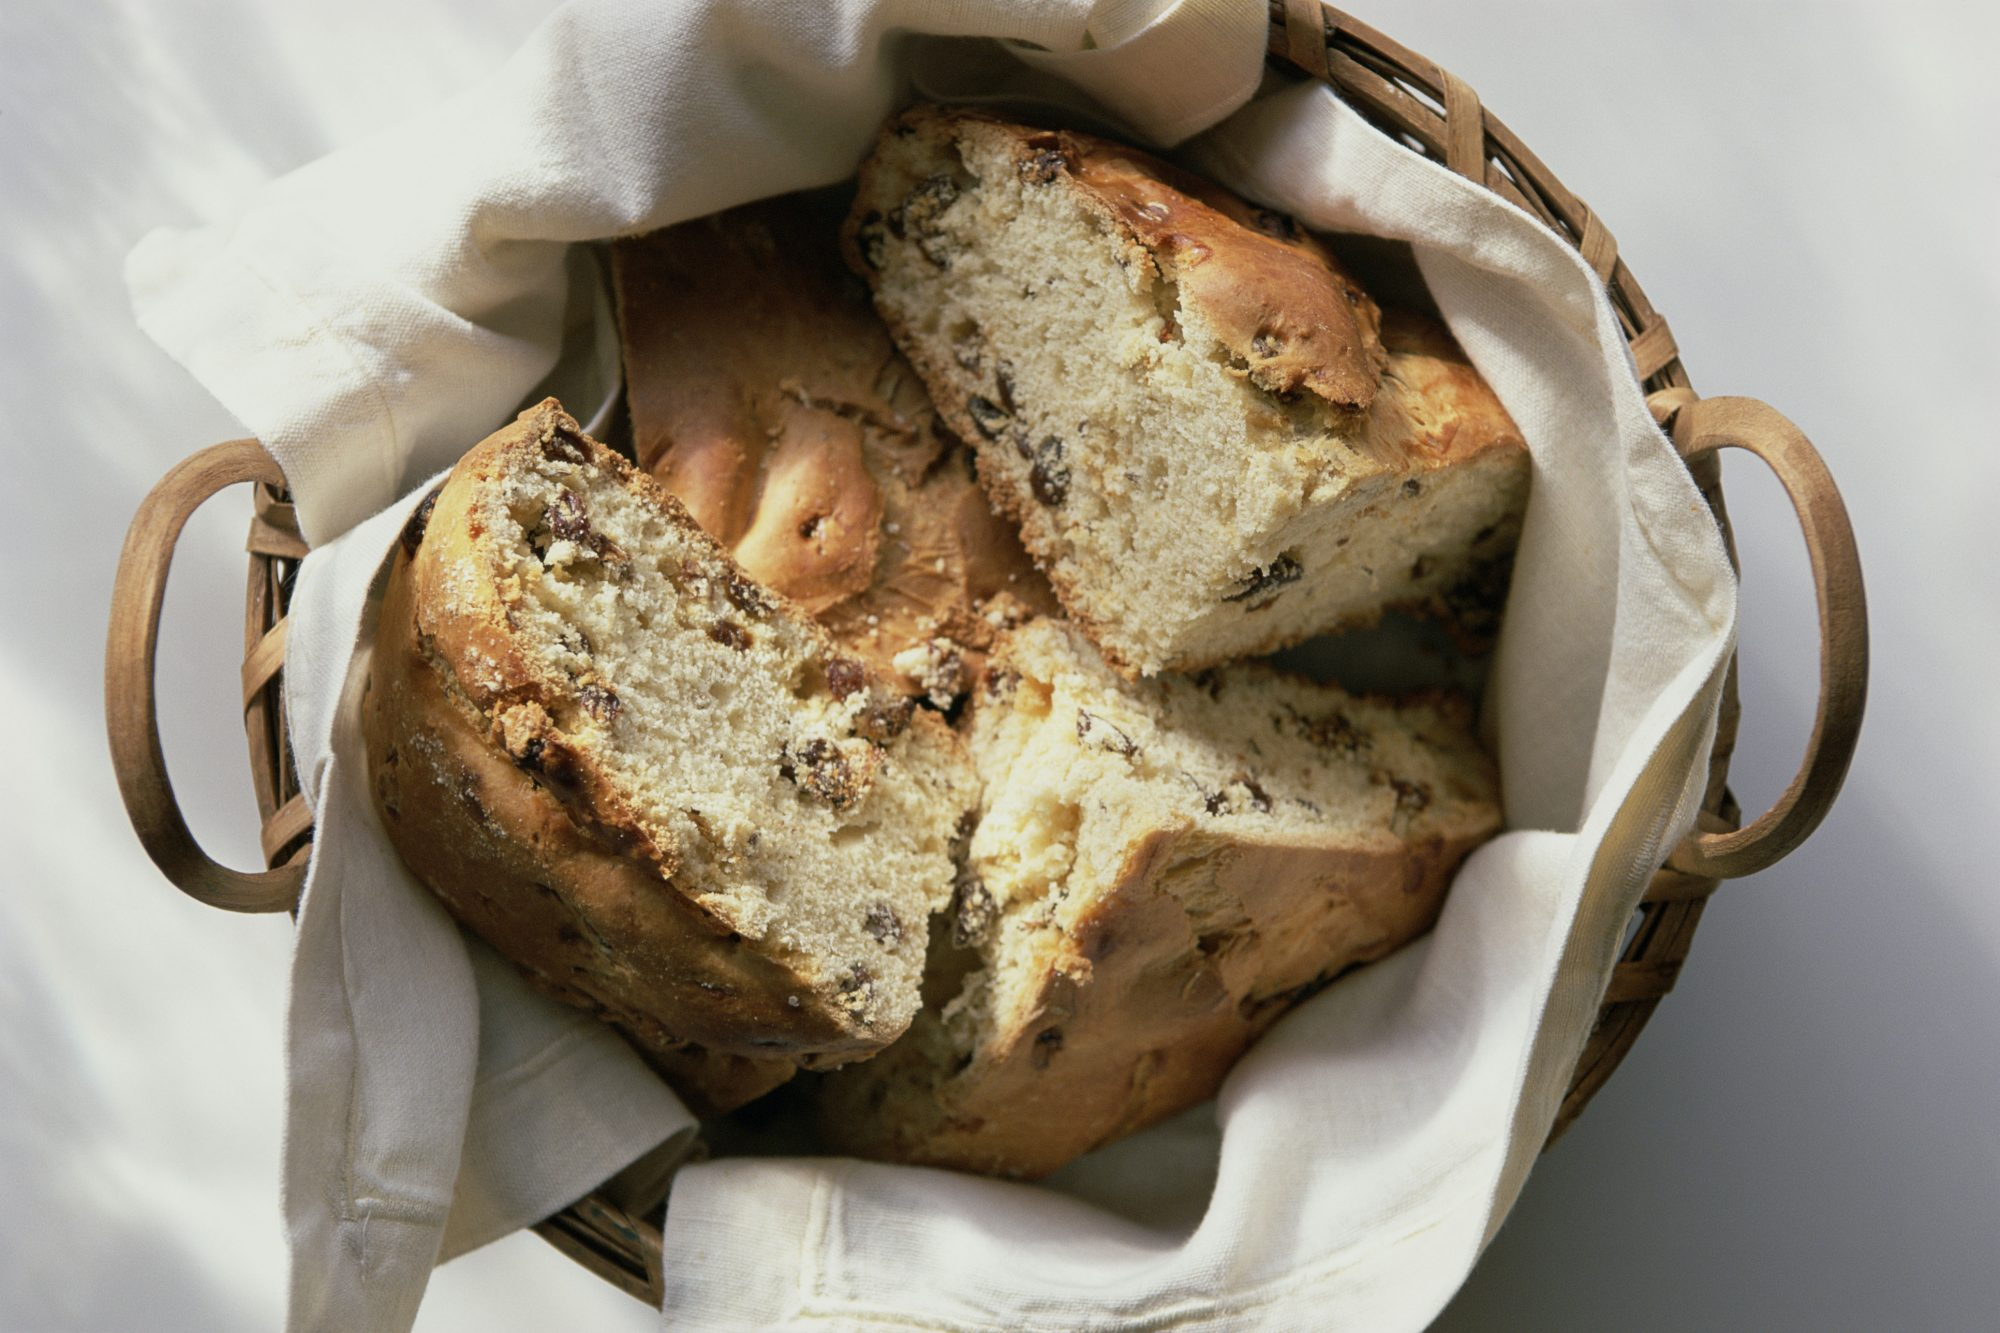 getty-irish-soda-bread-image